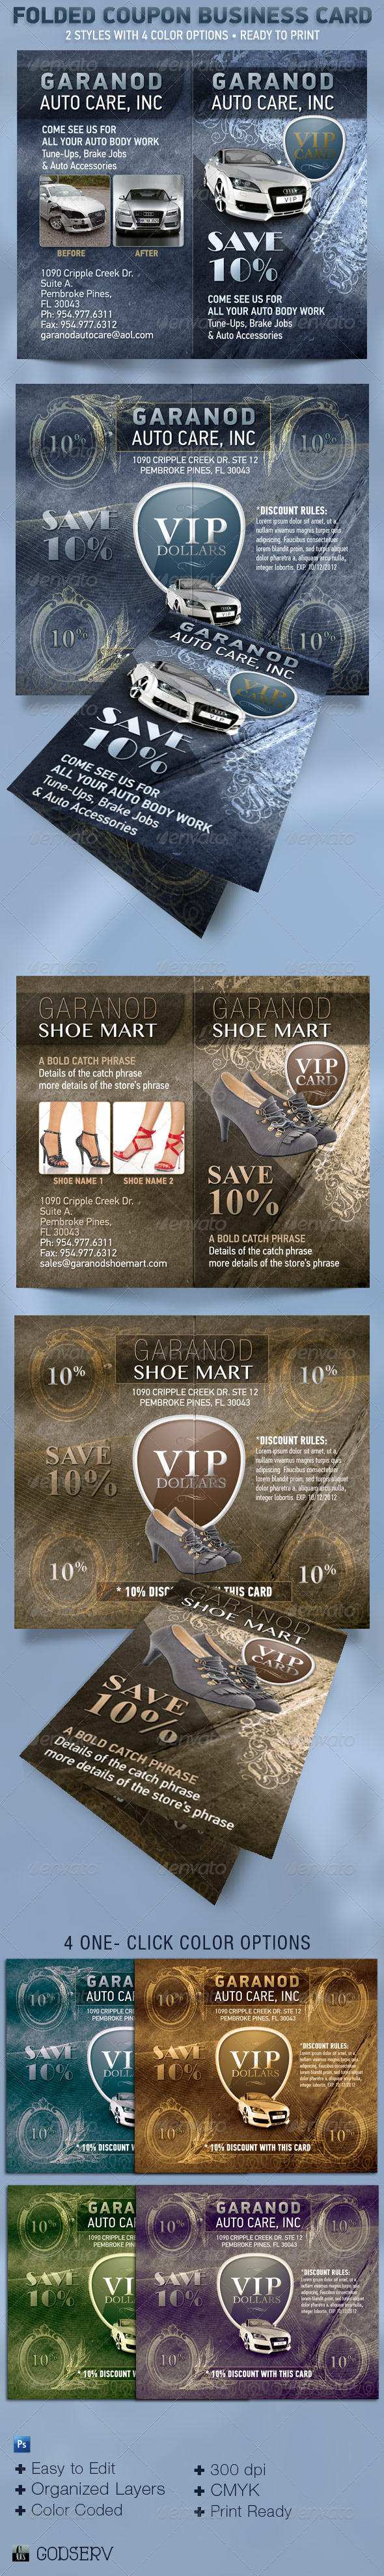 Folded Coupon Card Template - Corporate Business Cards